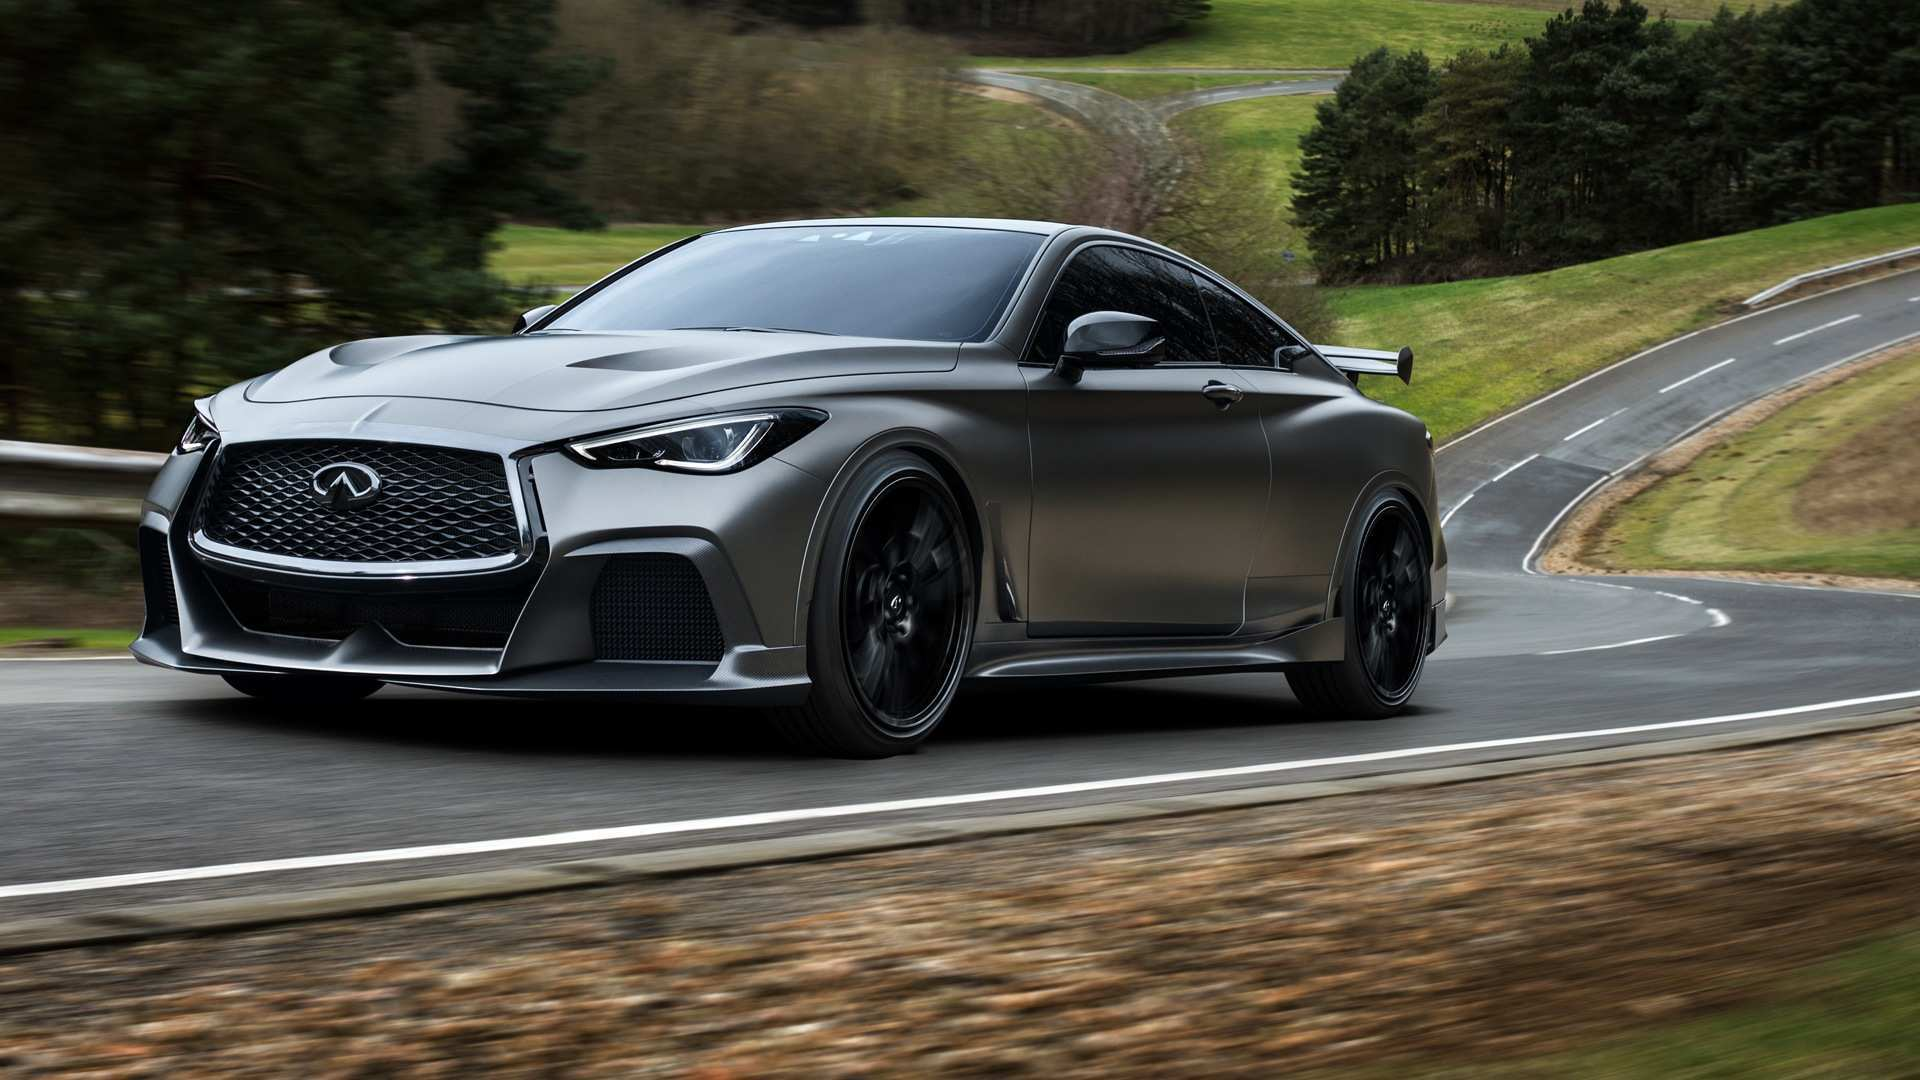 90 Gallery of 2020 Infiniti Q60 Exterior Date Rumors by 2020 Infiniti Q60 Exterior Date